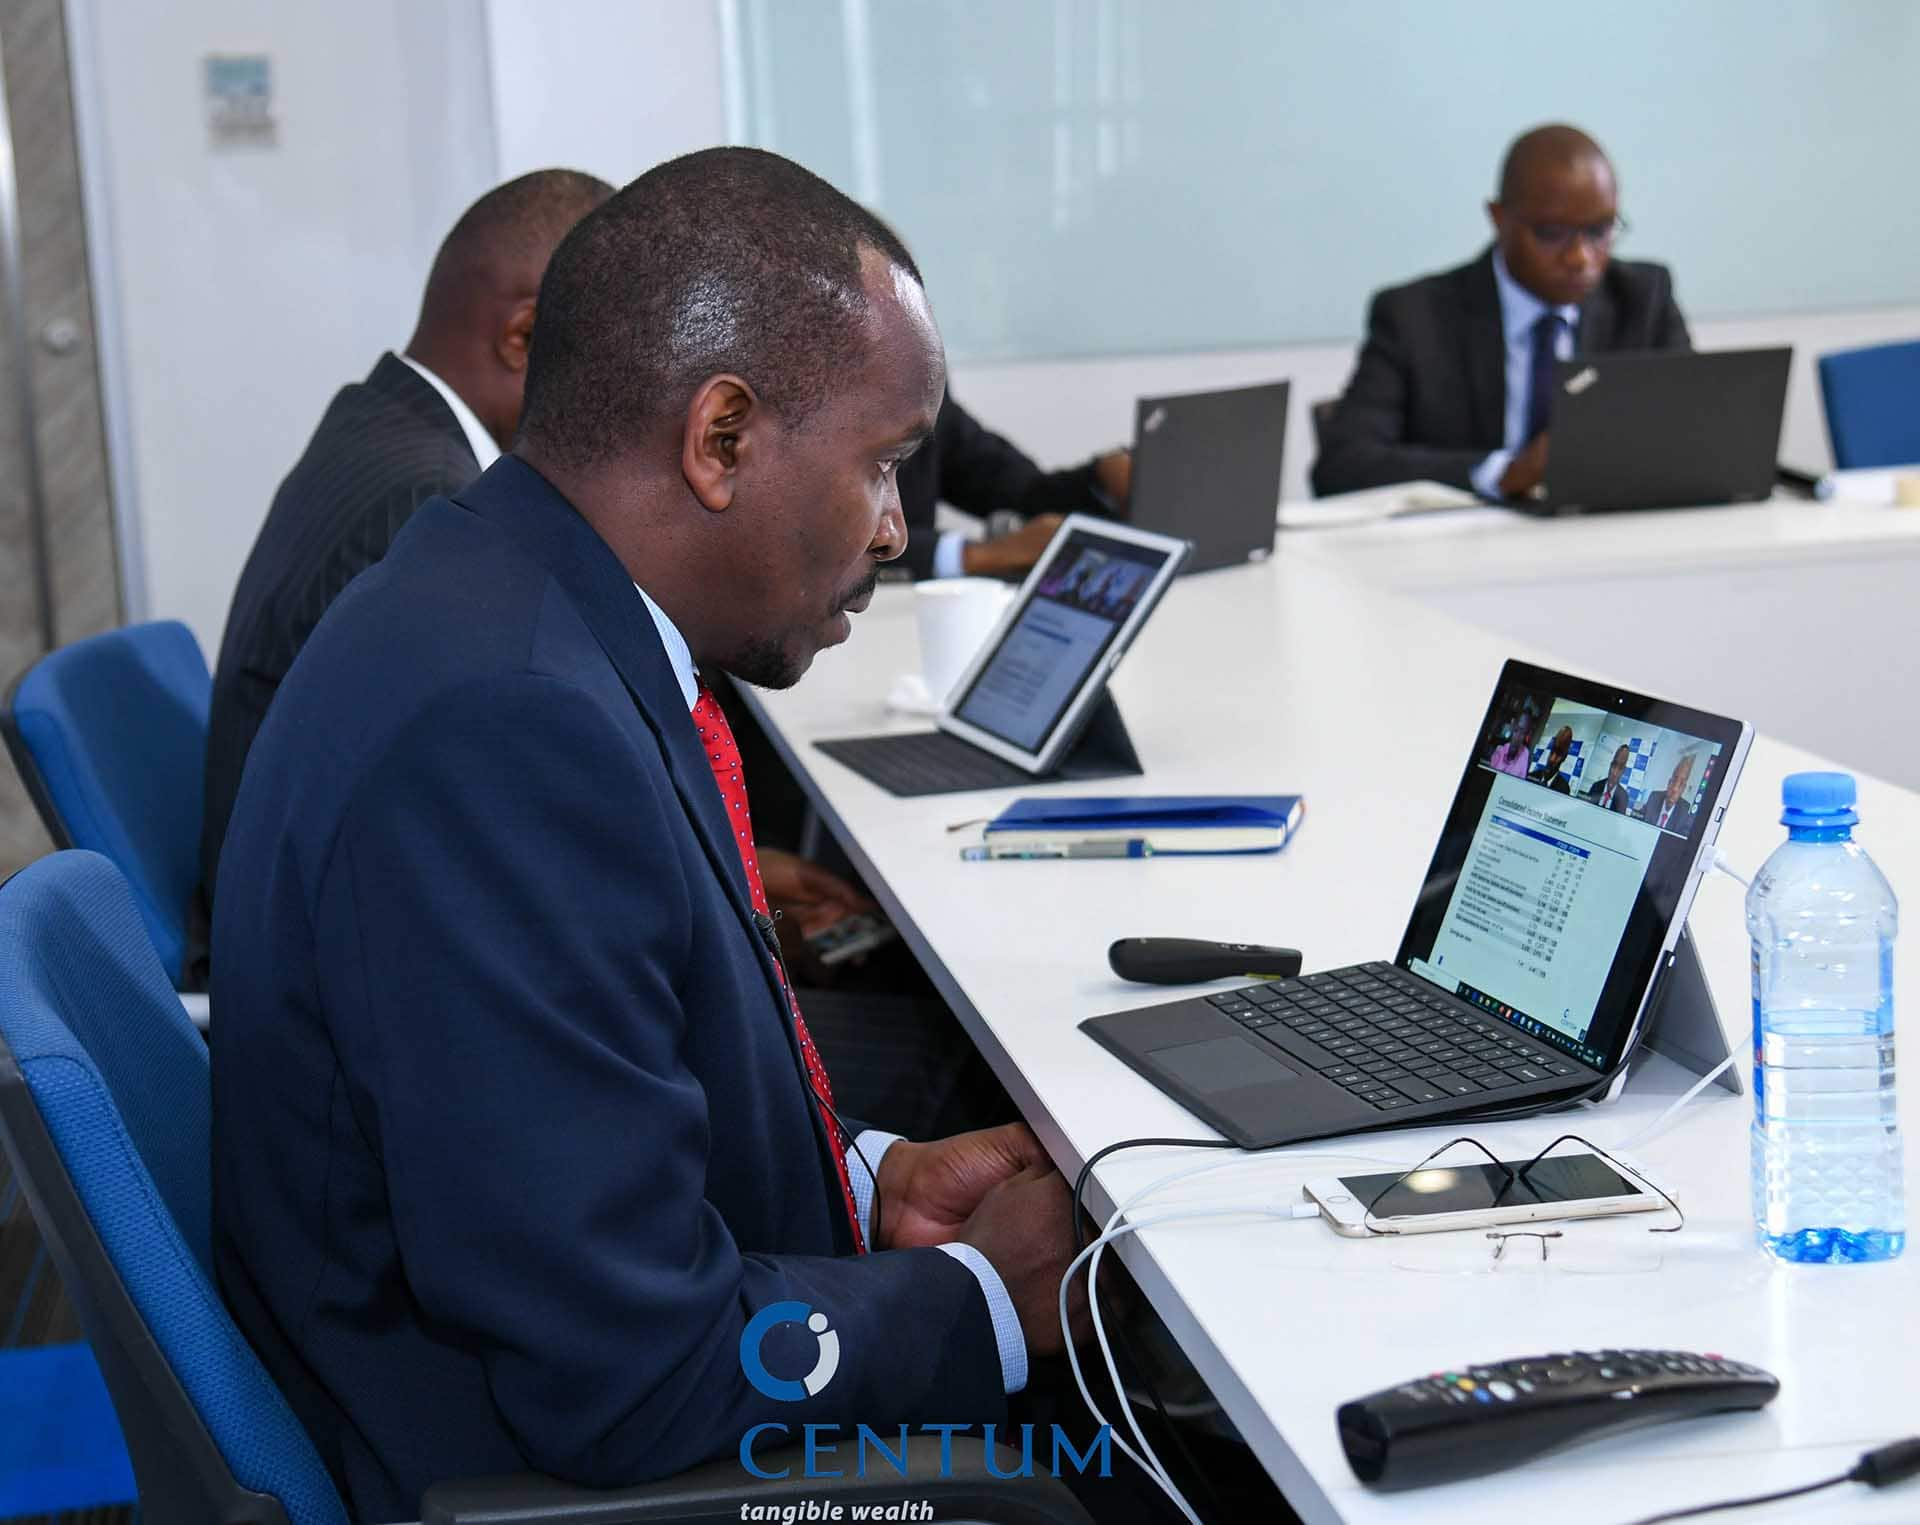 Centum partners with Barclays to  to finance buyers of the Centum real estate developments